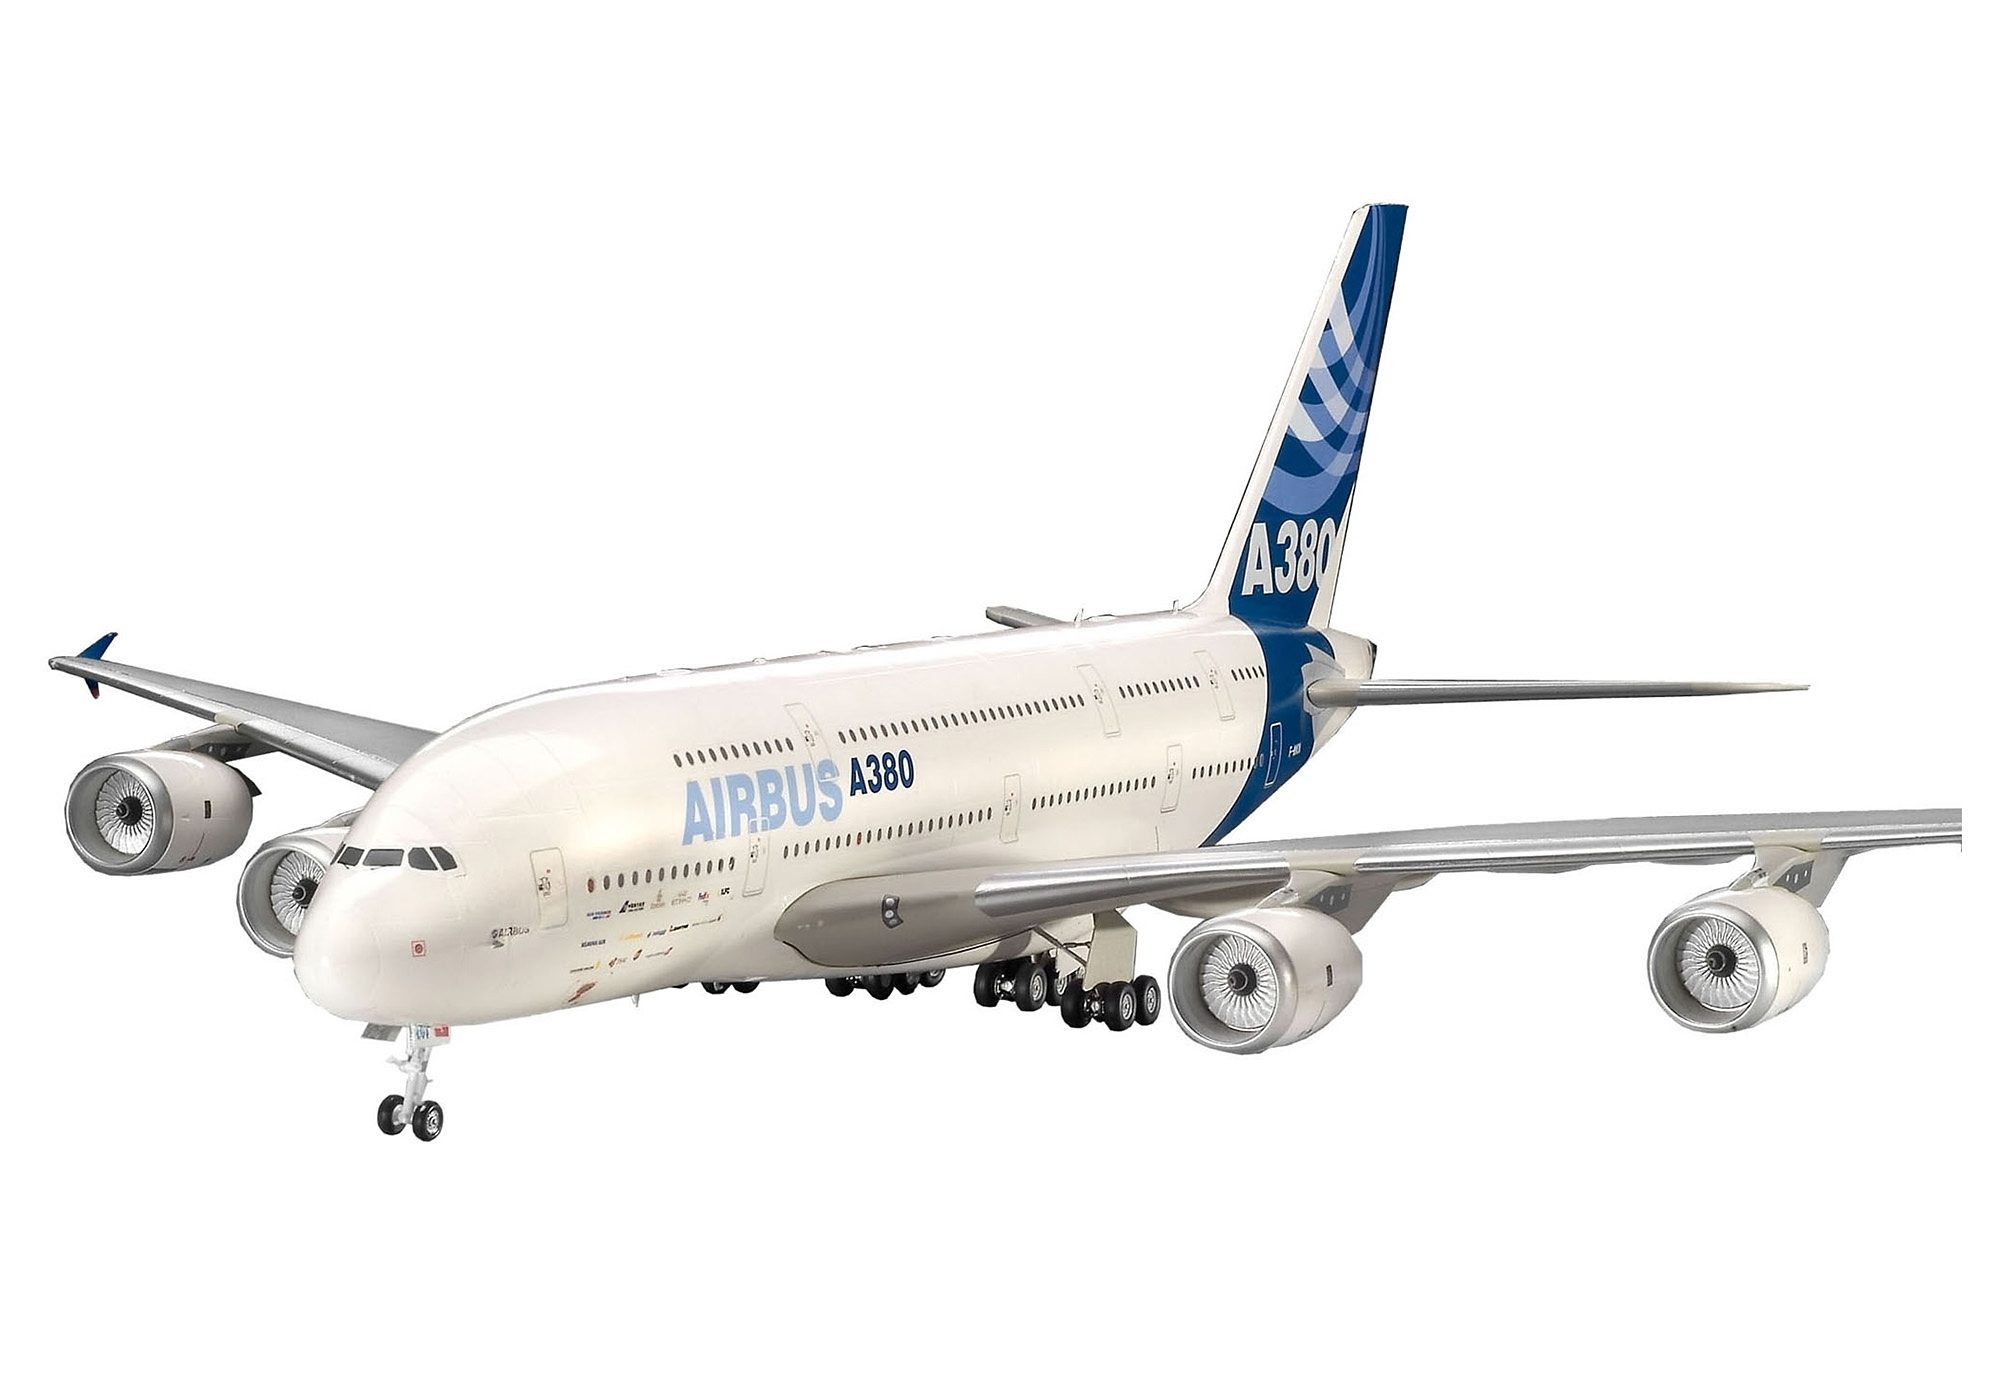 Revell® Modellbausatz Flugzeug, »Airbus A380 New Livery«, Maßstab 1:144